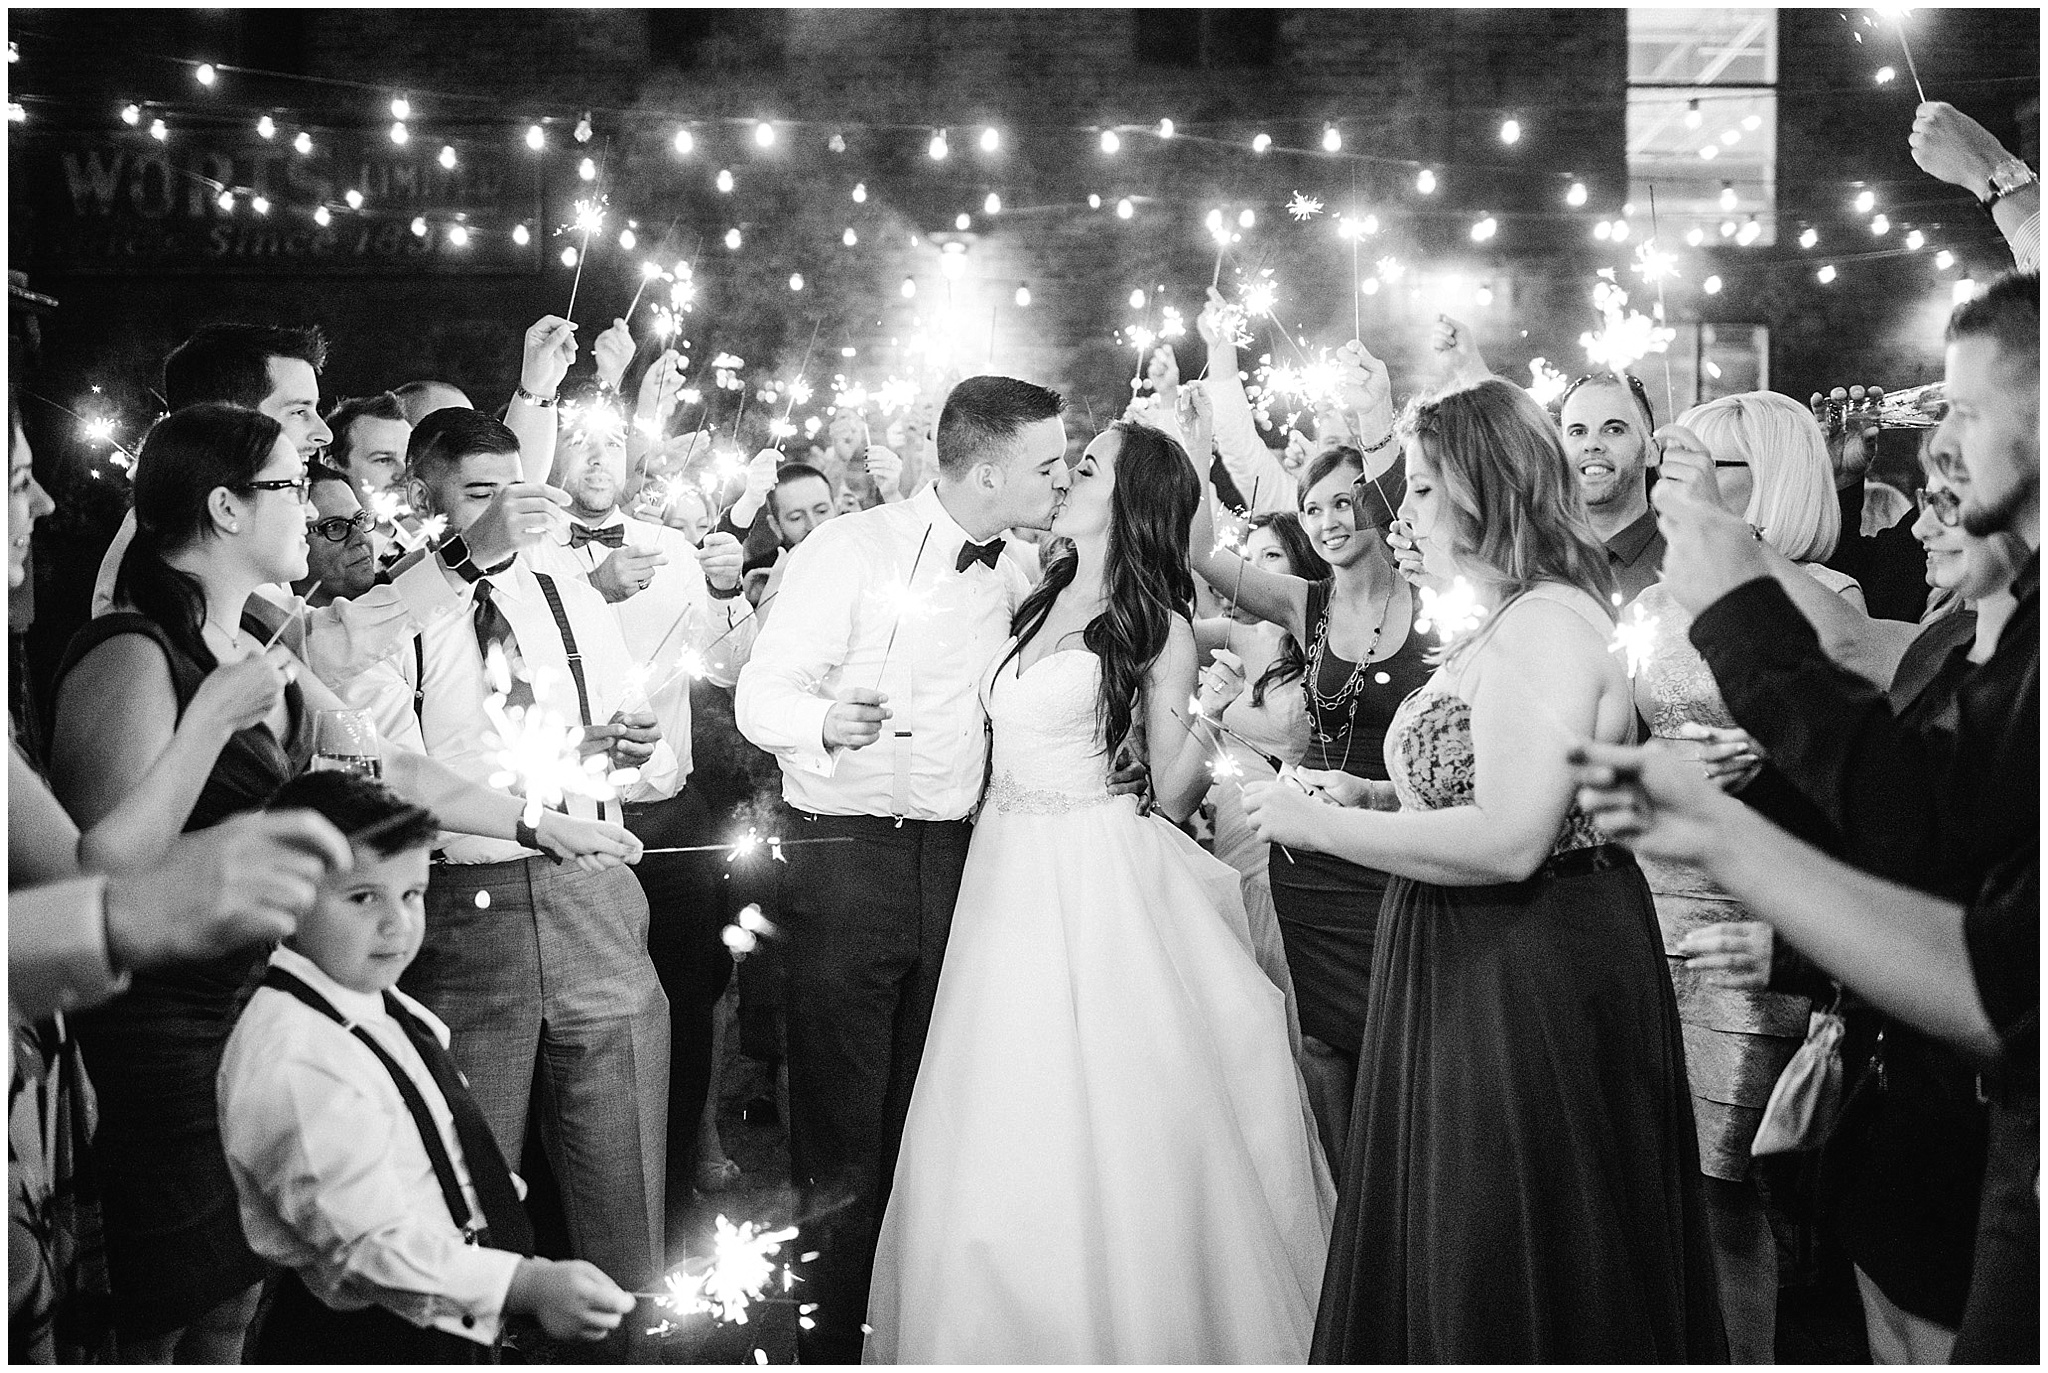 Sparkler Wedding Photo | Distillery District wedding by Jenn Kavanagh Photography